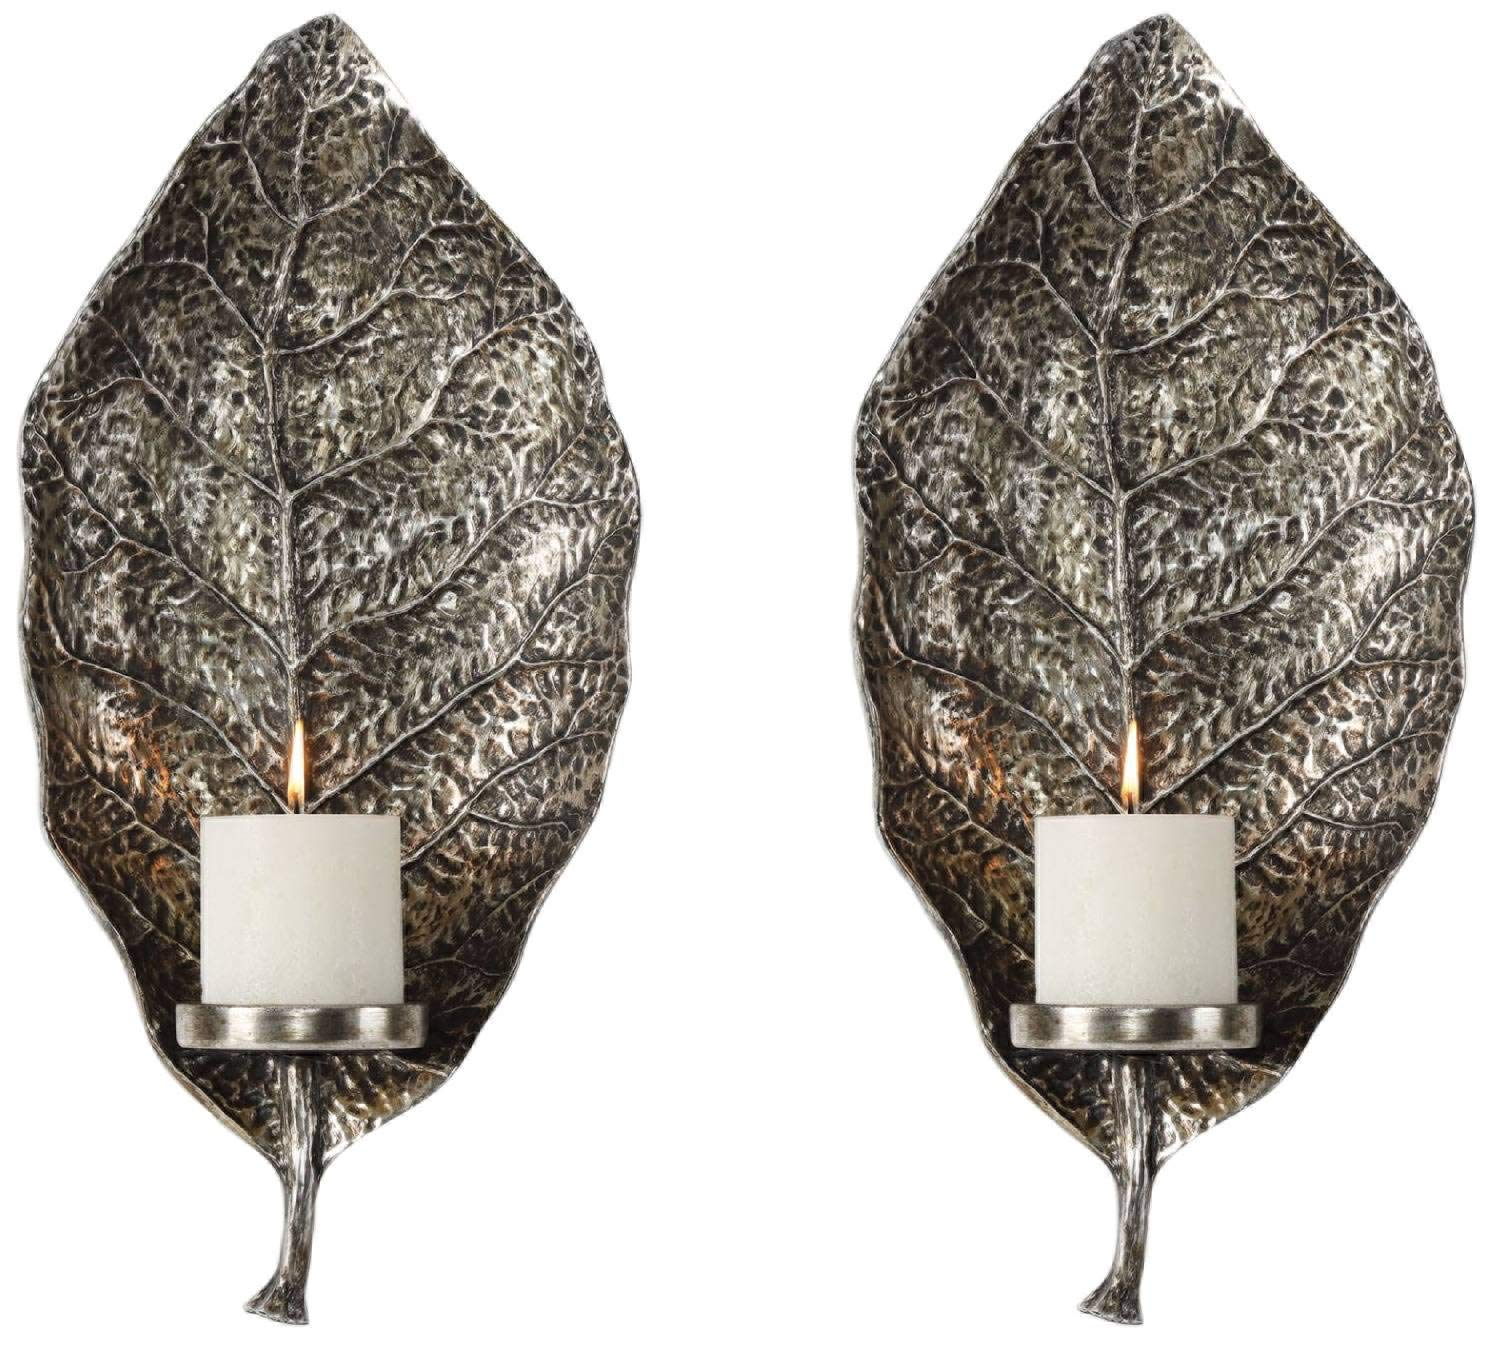 Uttermost Zelkova 19 1/2'' H Antiqued Silver Candle Wall Sconce Set of 2